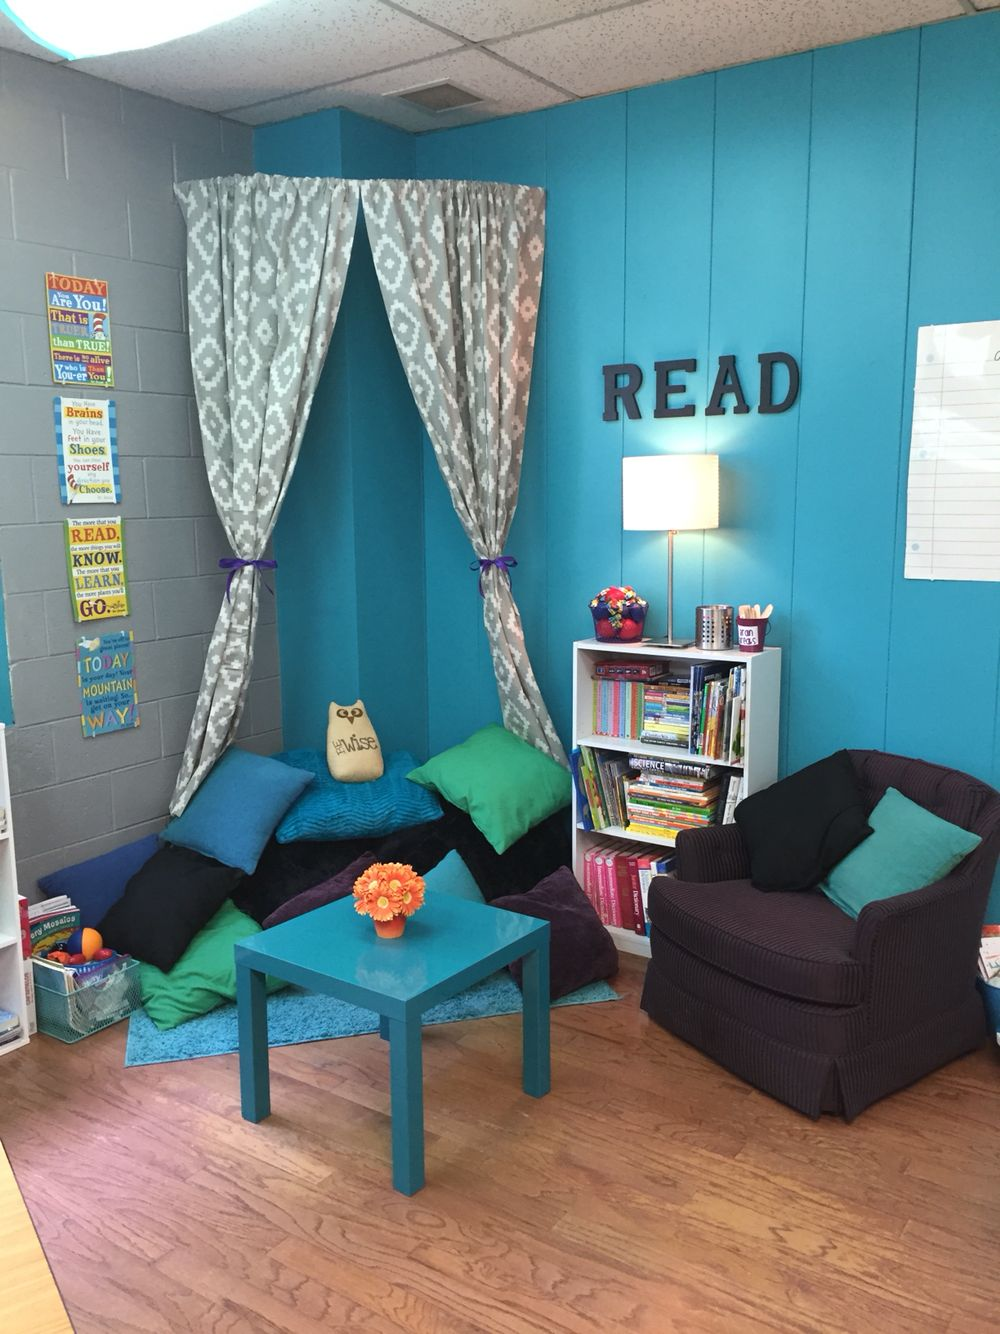 Classroom Reading Nook Curved Shower Rod Curtains And Shelves From Target Small Arm Chair And